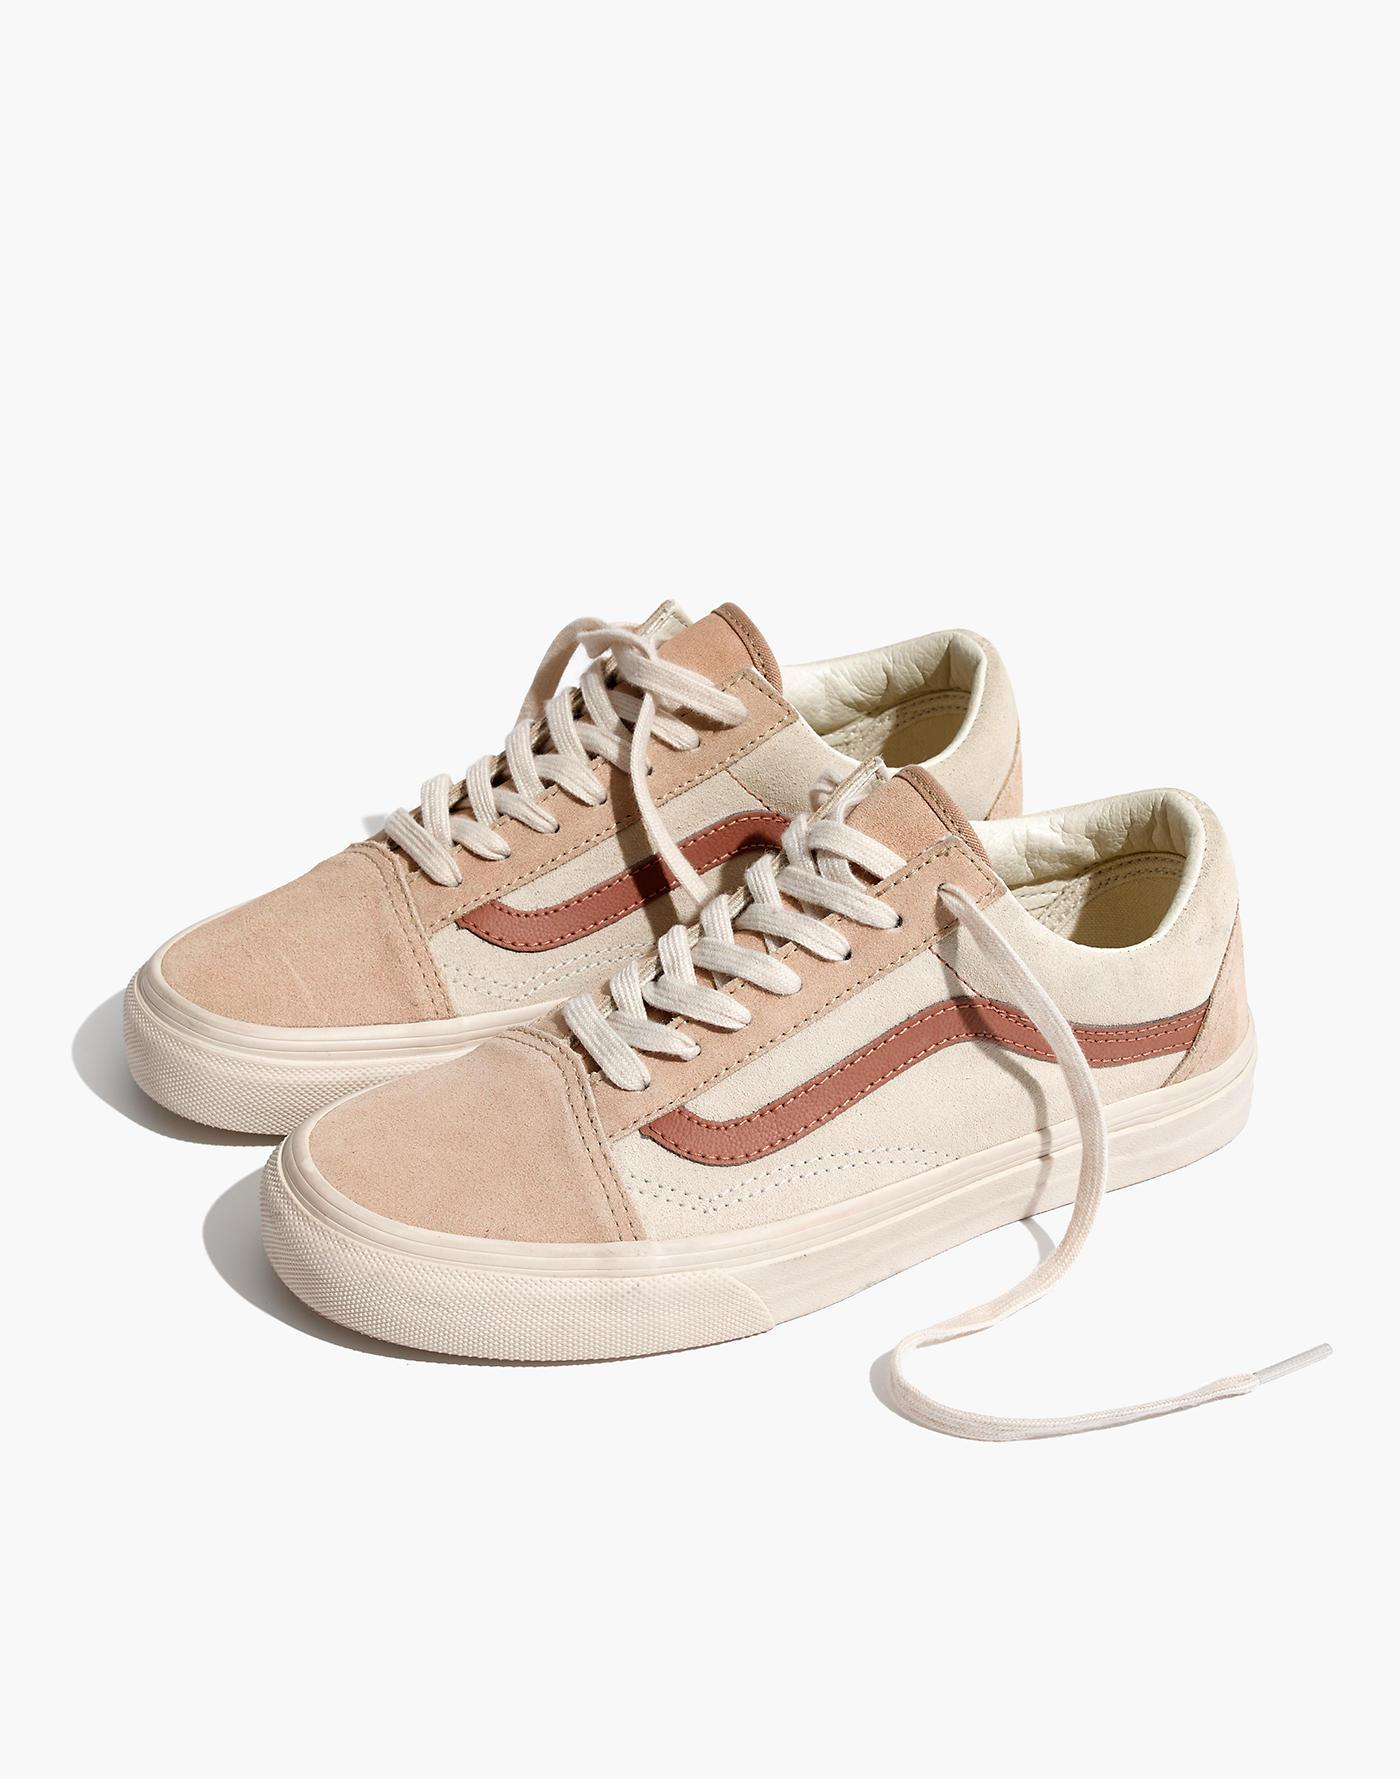 46d88b73870 Madewell X Vans® Unisex Old Skool Lace-up Sneakers In Camel ...